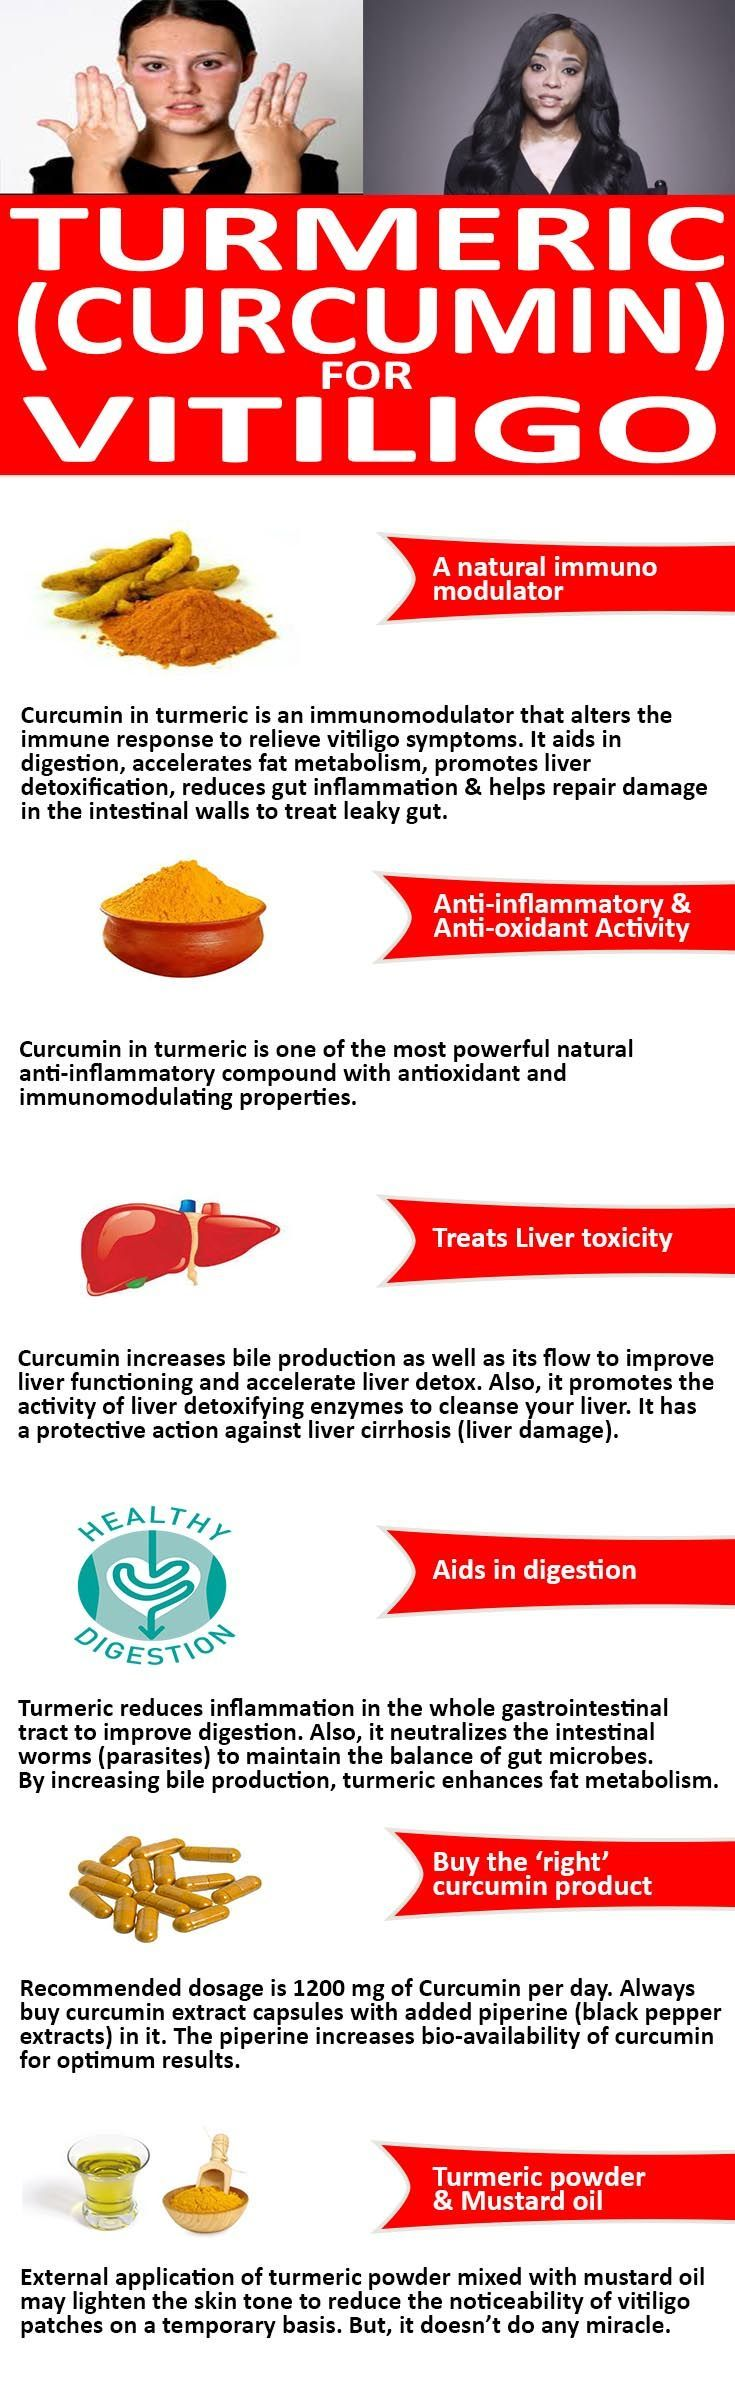 Curcumin in turmeric is a research proven anti-inflammatory, anti-oxidant and immunomodulator natural compound. It promotes liver detox and aids in digestion. A natural supplement to treat leaky gut and manage vitiligo symptoms.  #TurmericVitiligo #CurcuminVitiligo #TurmericLeucoderma #CurcuminLeucoderma